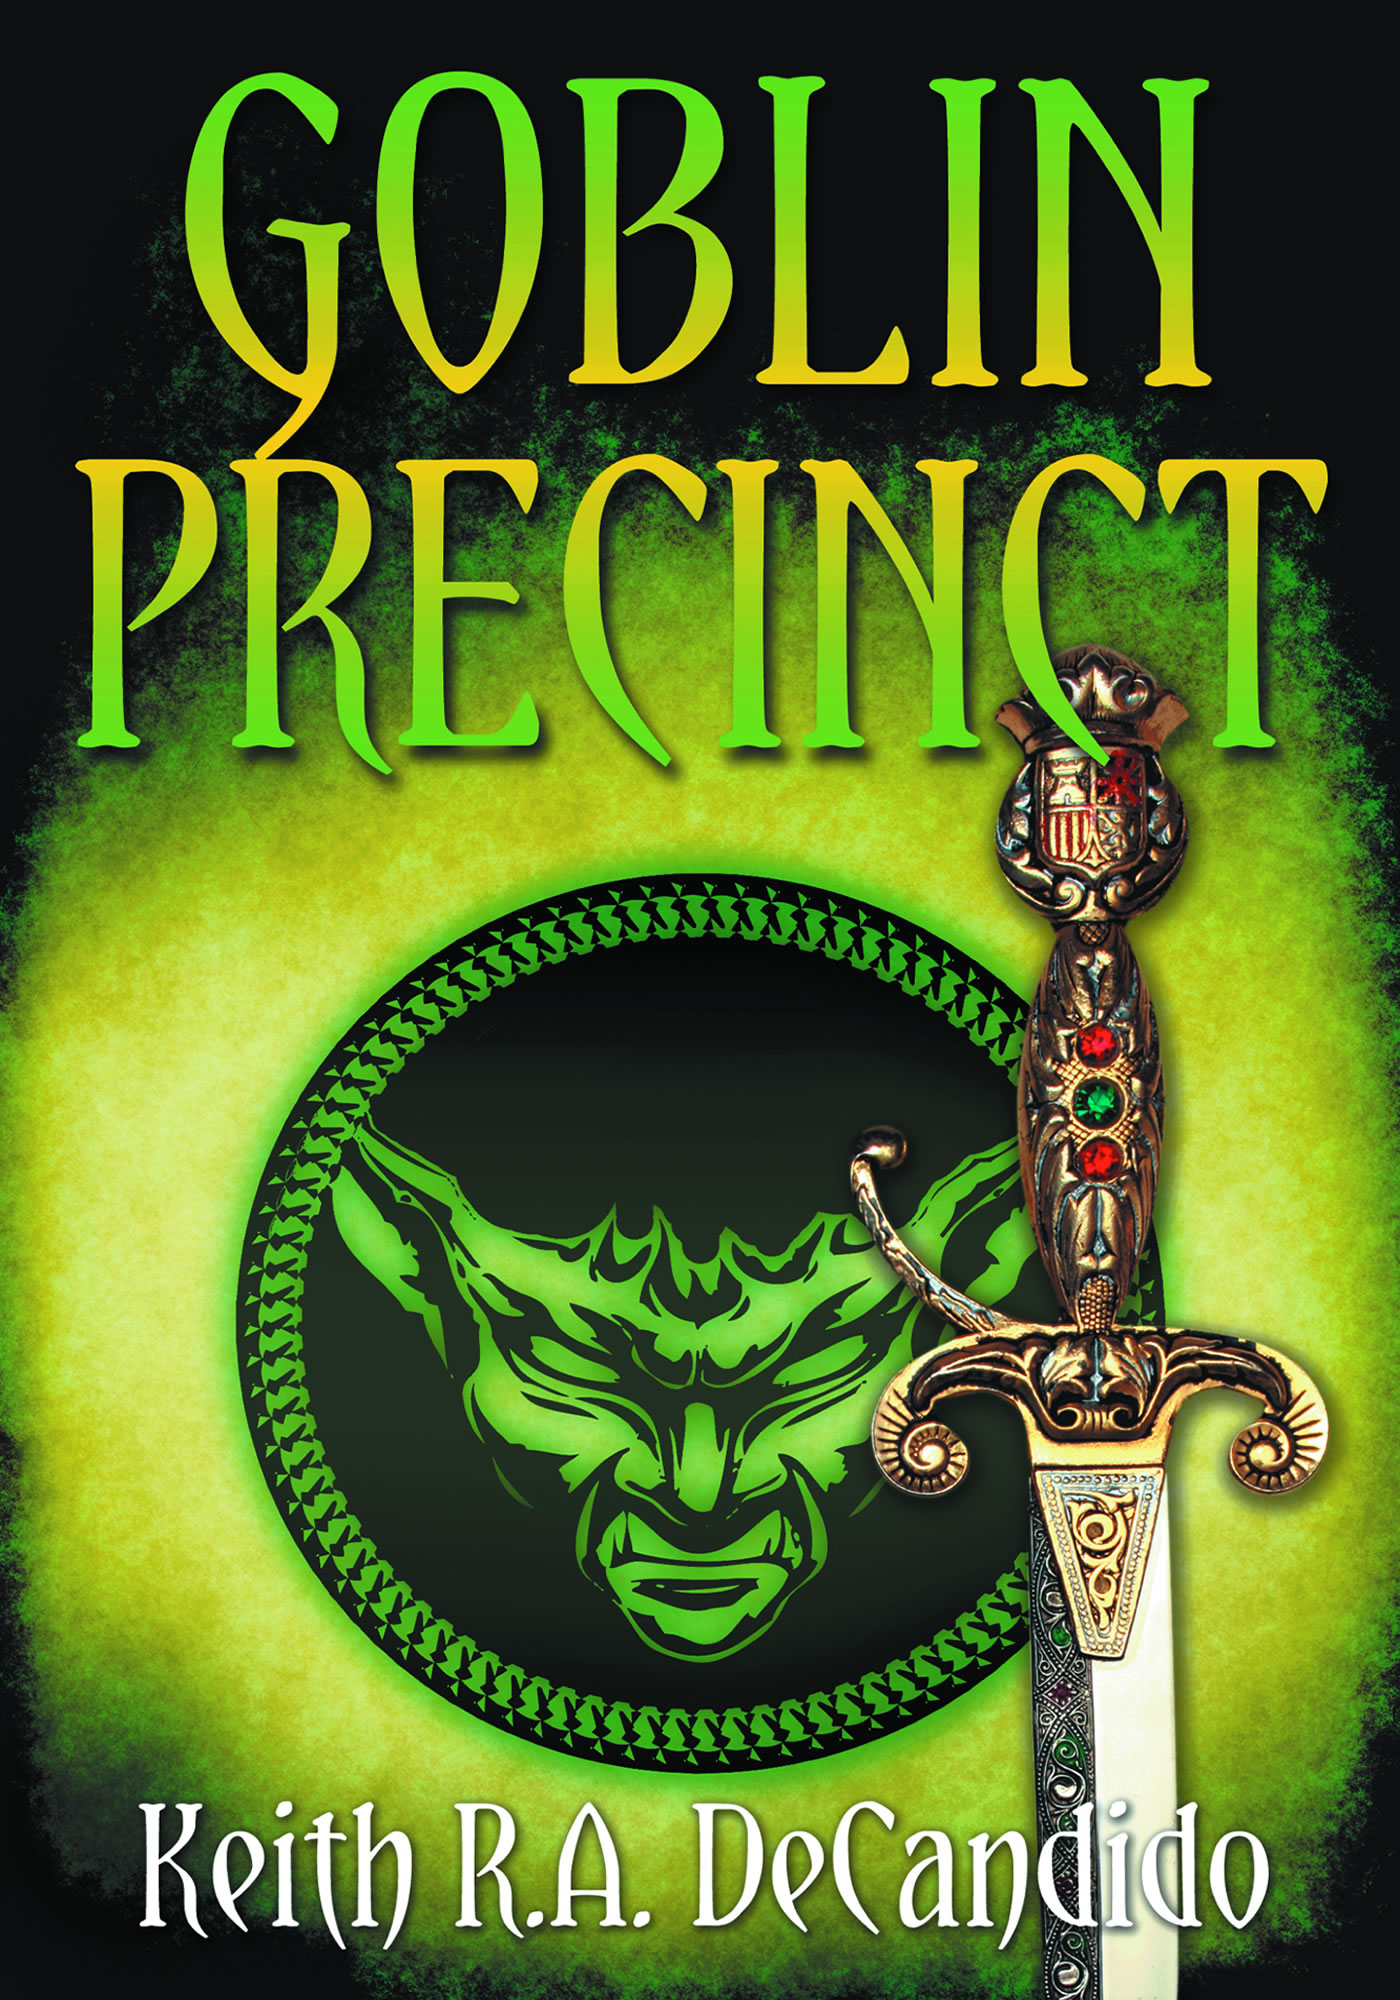 Goblin Precinct By: Keith R.A. DeCandido